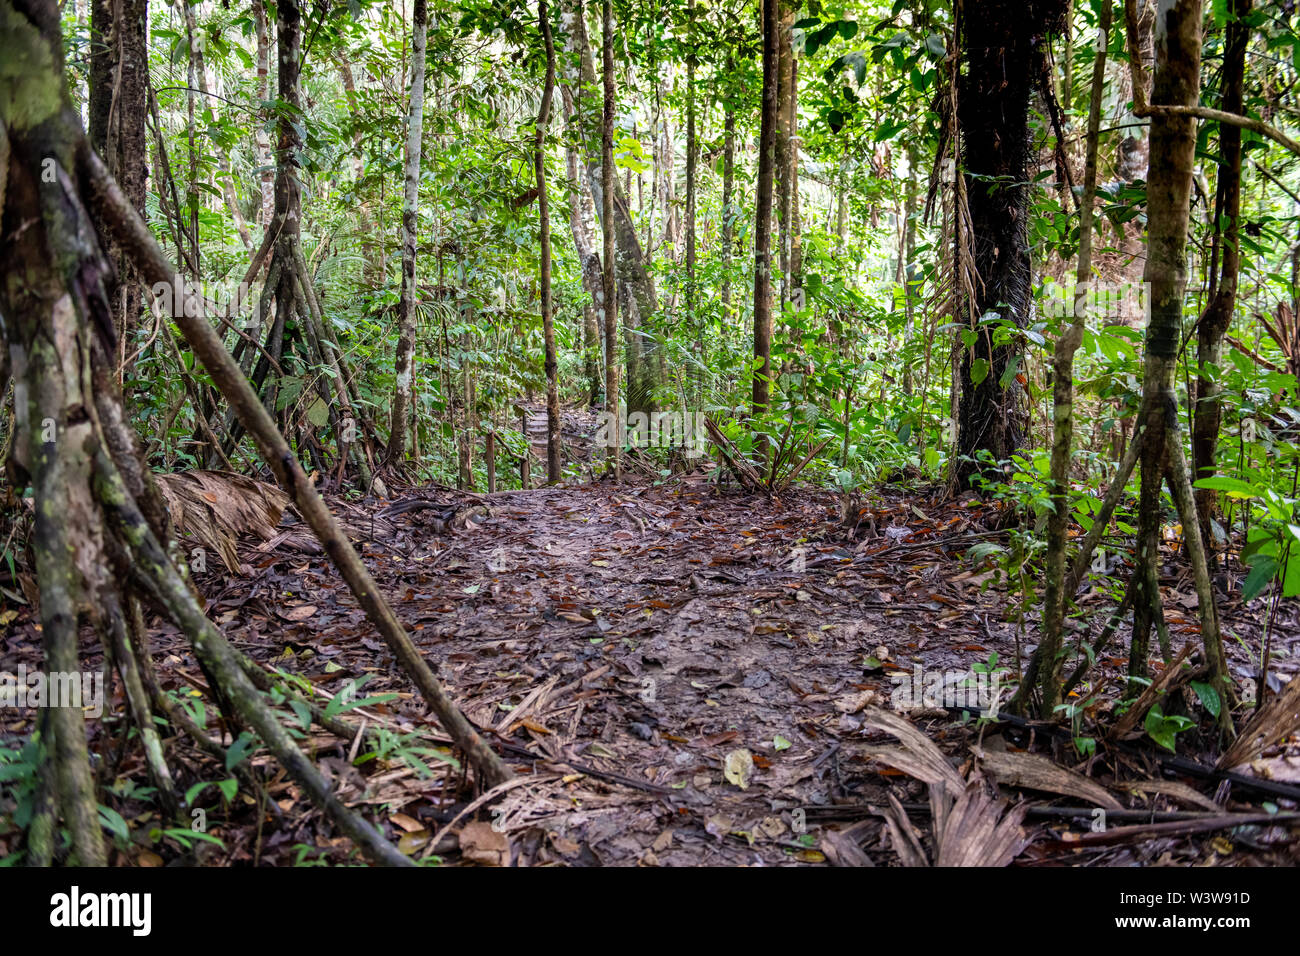 Dey 1 and gopal shukla 3 1department of forestry 2pomology & Equatorial Forest High Resolution Stock Photography And Images Alamy